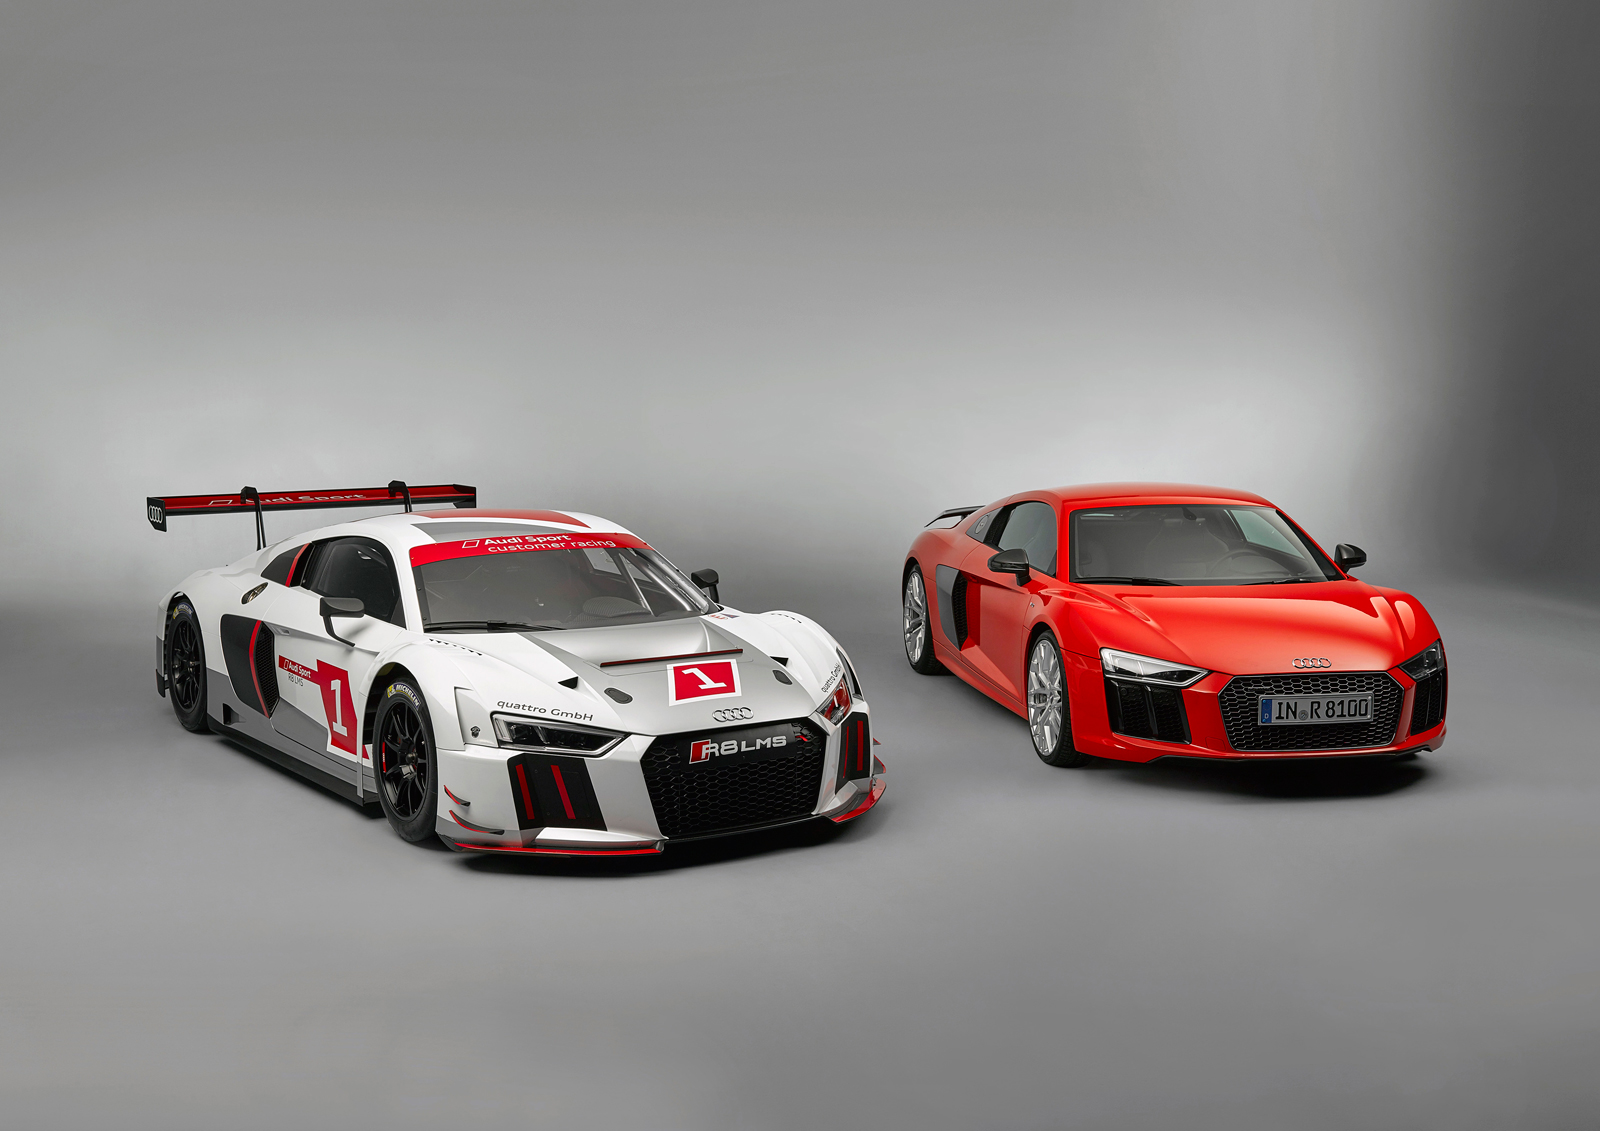 New audi r8 lms now available for order audi r8 lms audi r8 v10 plus sciox Gallery